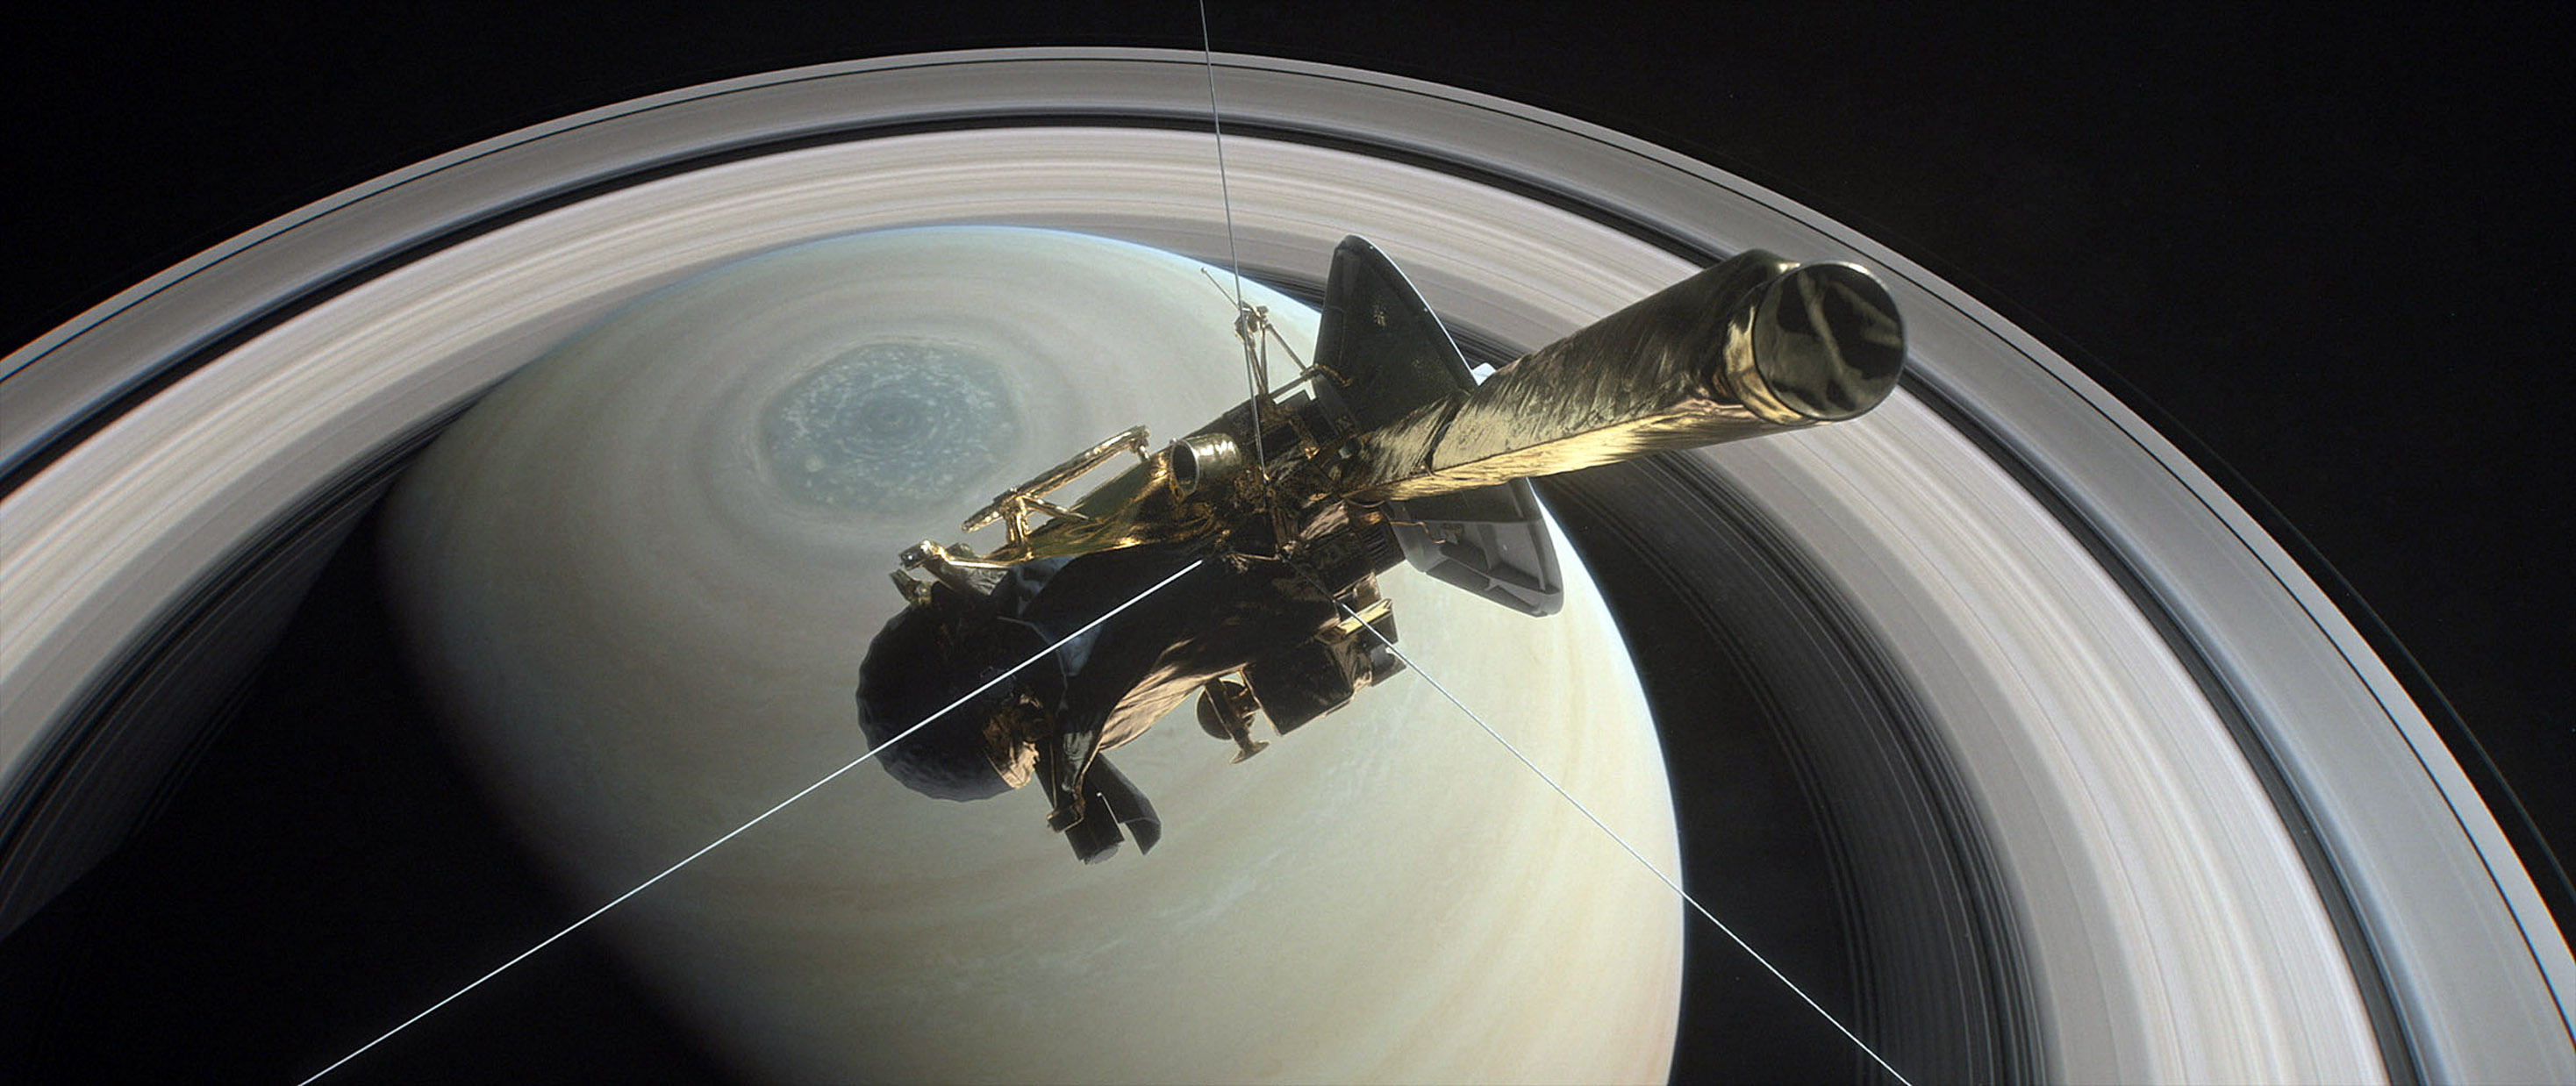 The 22ft long probe is near the end of a one-way trip from Saturn's largest moon Titan, whose gravity was used to nudge it on to its fatal trajectory. (NASA/PA Wire)